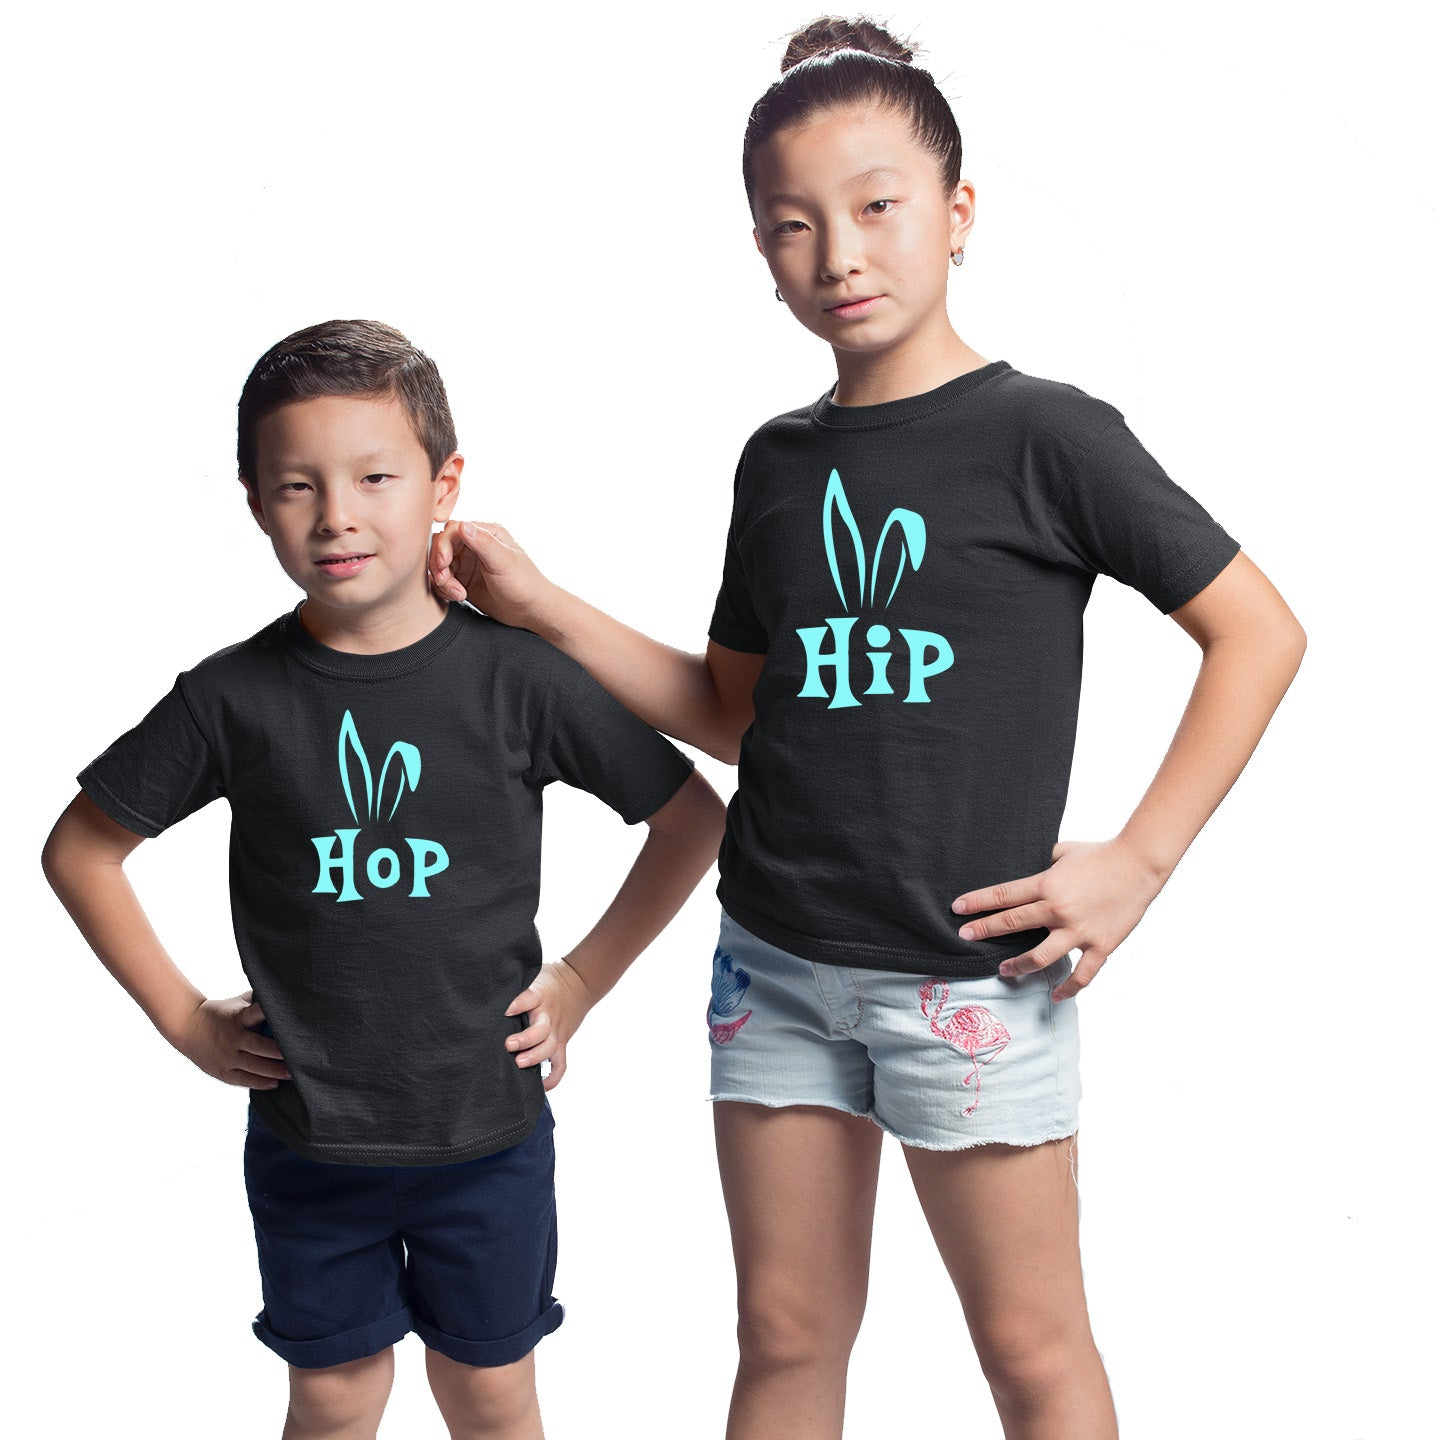 Sprinklecart Bunny Ears Hip Hop Cotton Kids T Shirt Combo for Sibling (Black)